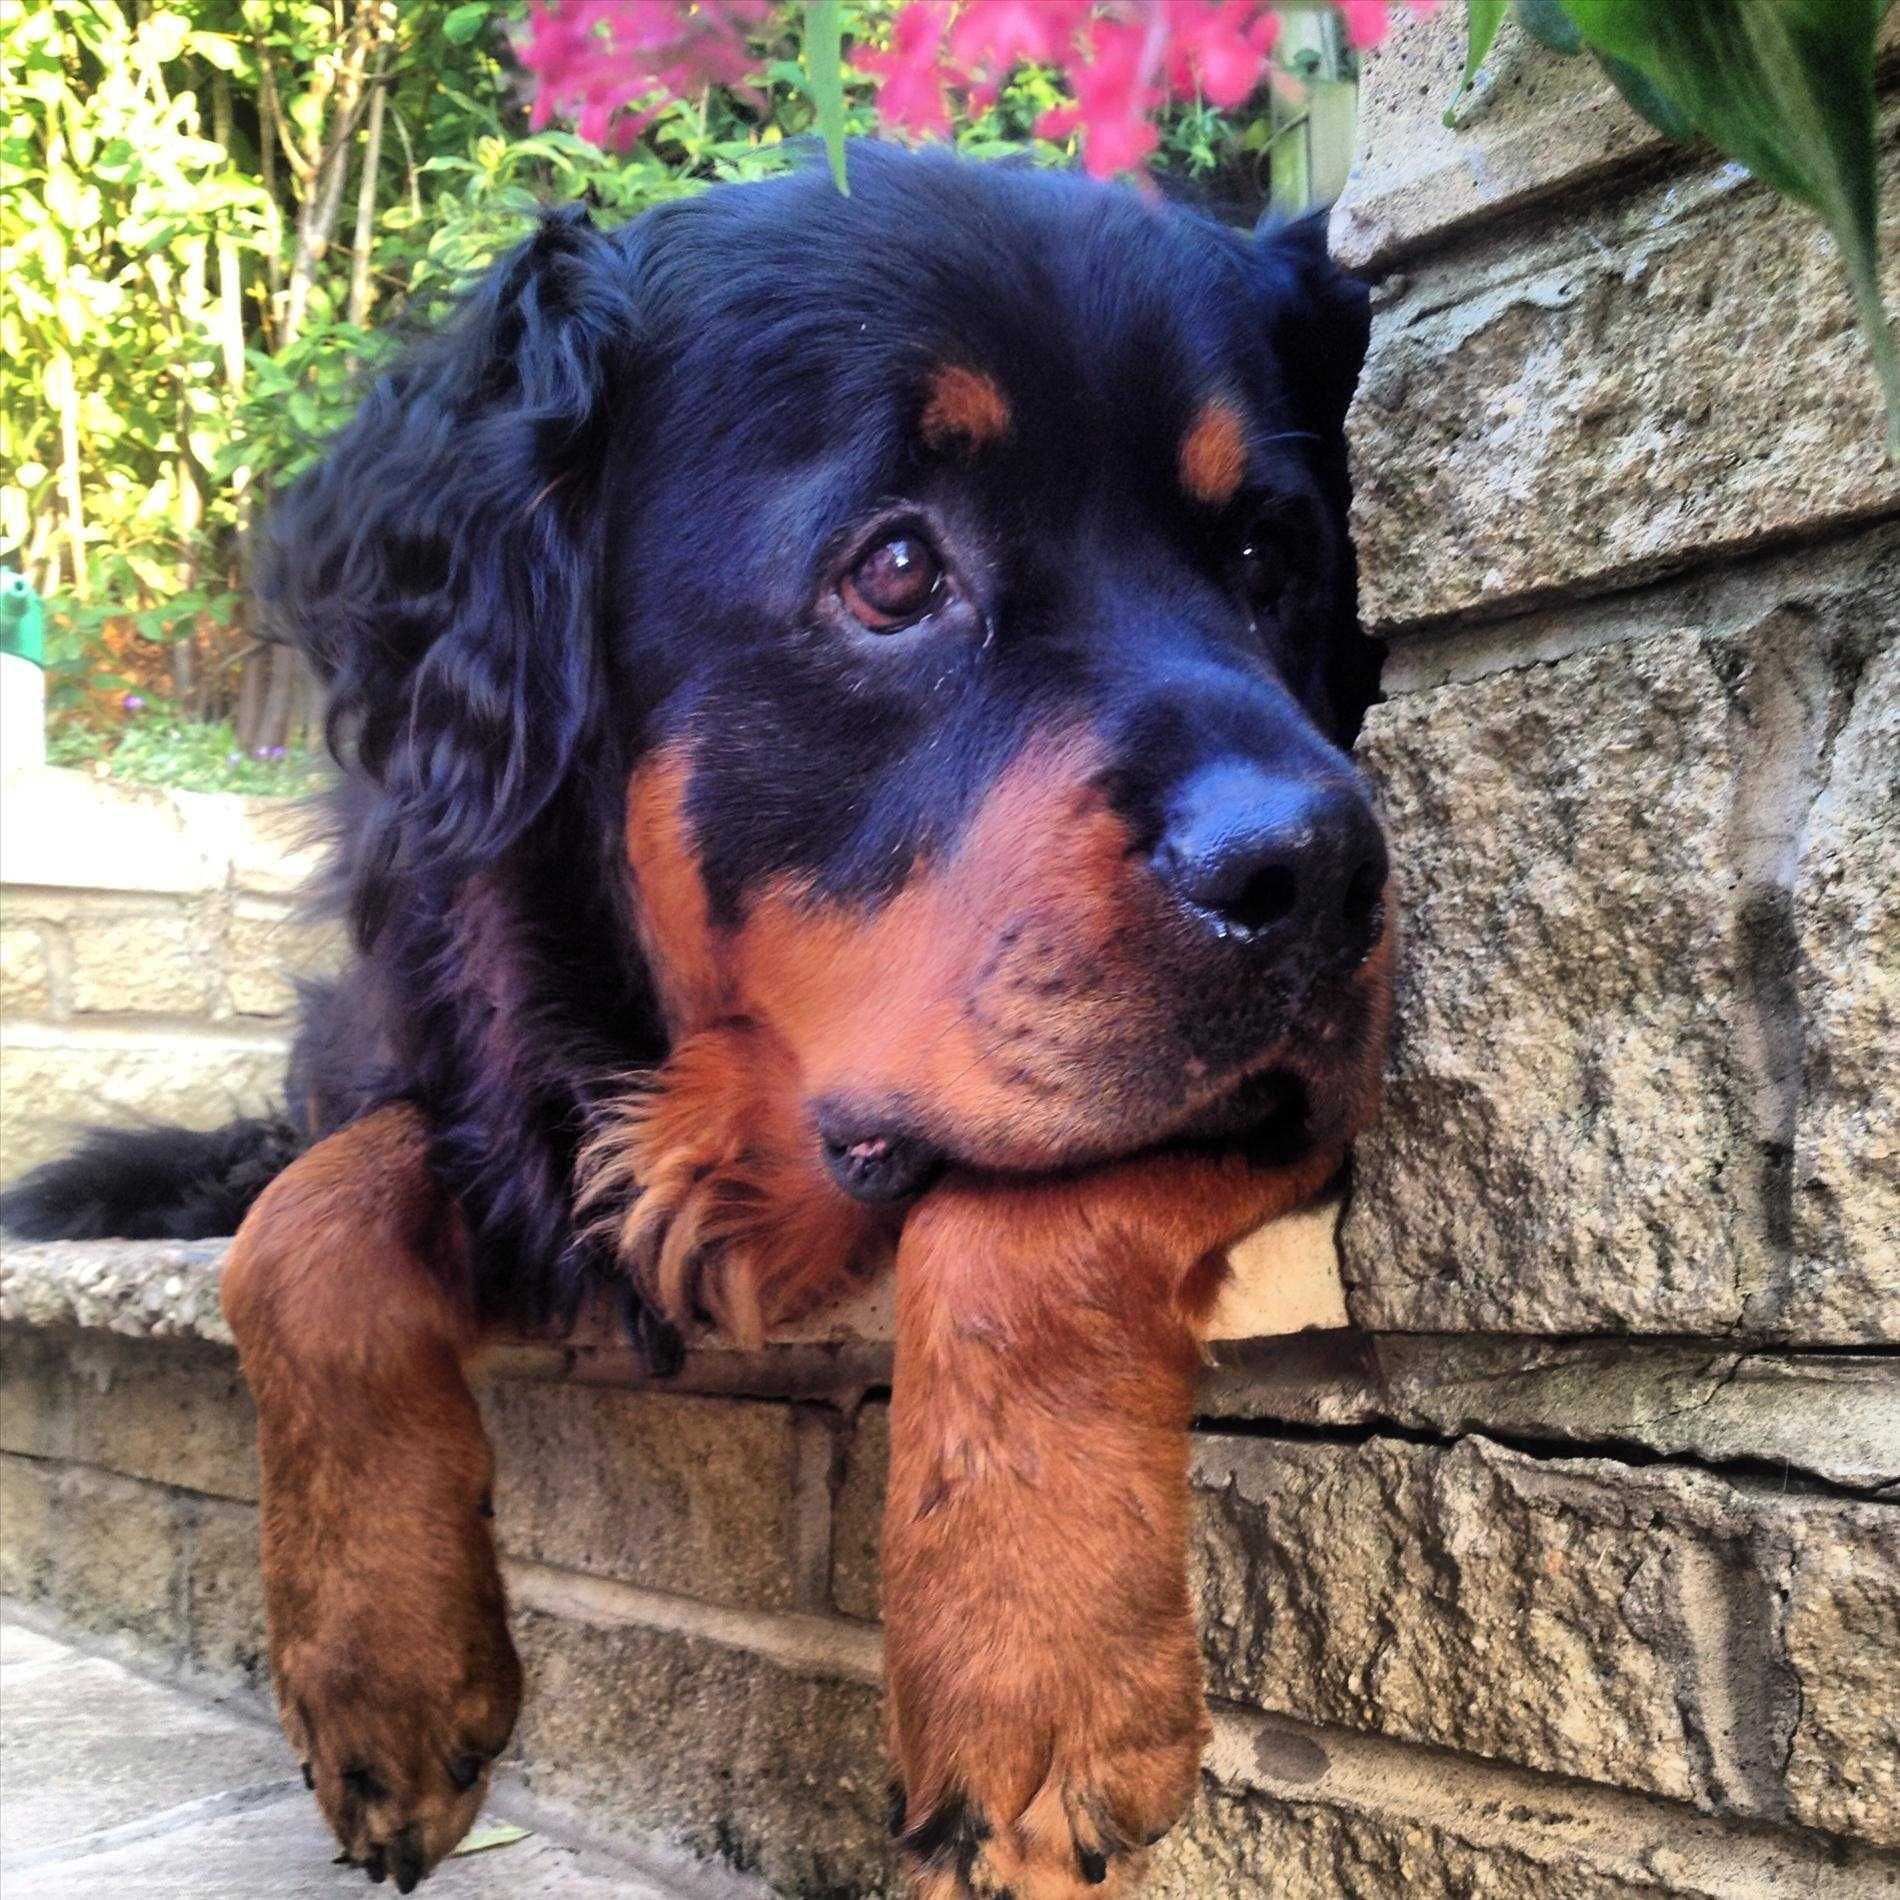 Breed Dogs Allmuttcom Gordon Setter Rottweiler Mix Pictures Of Breed Dogs Spockthedogcom Spockthedogcom Long Haired Rottweiler Rottweiler Mix Cute Puppy Photos